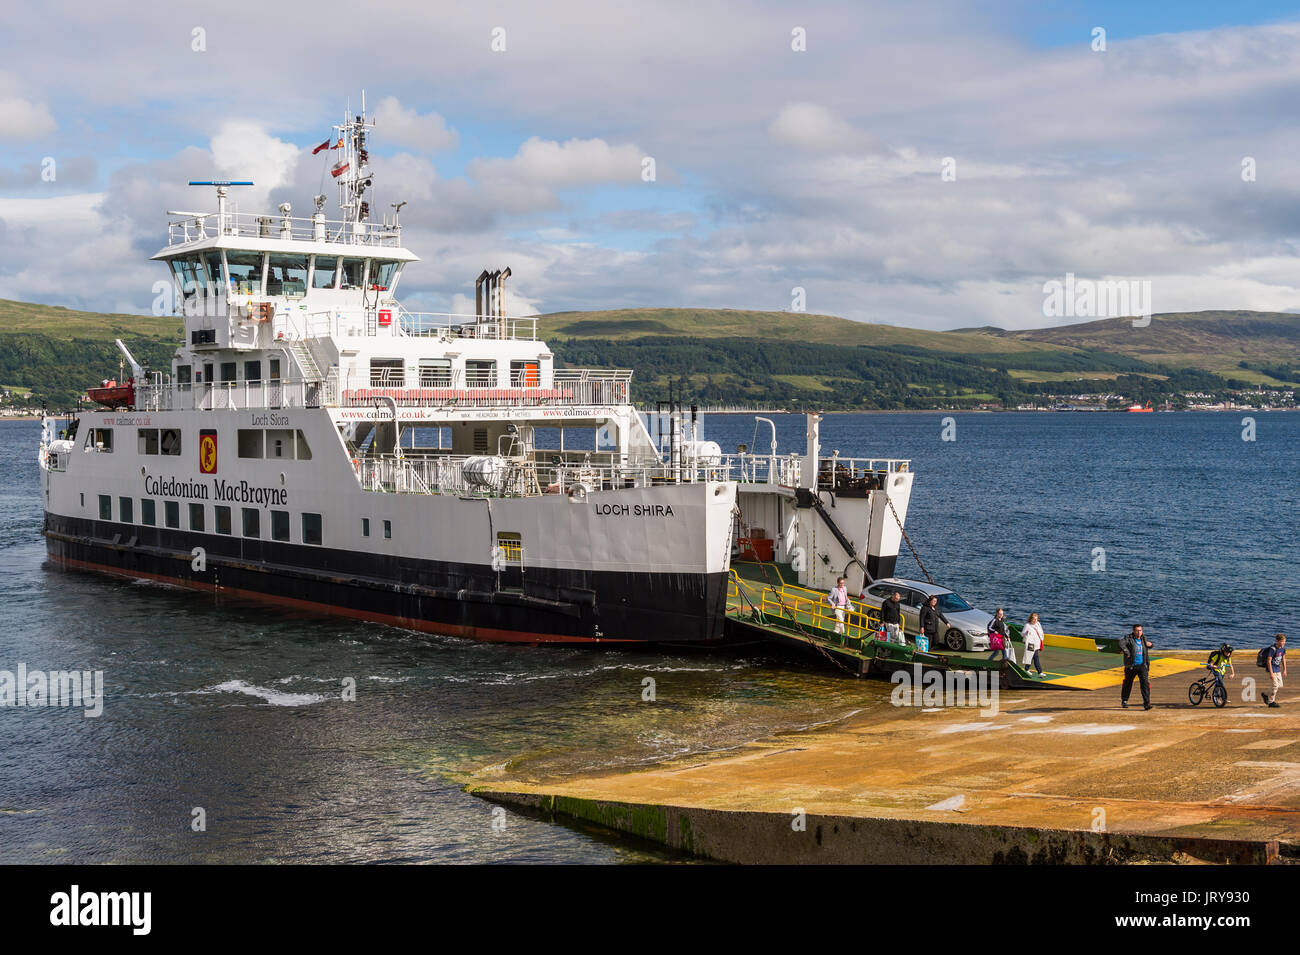 Millport, Scotland - August 3, 2017: Passengers disembarking from The Loch Shira operated by Caledonian MacBrayne - Stock Image